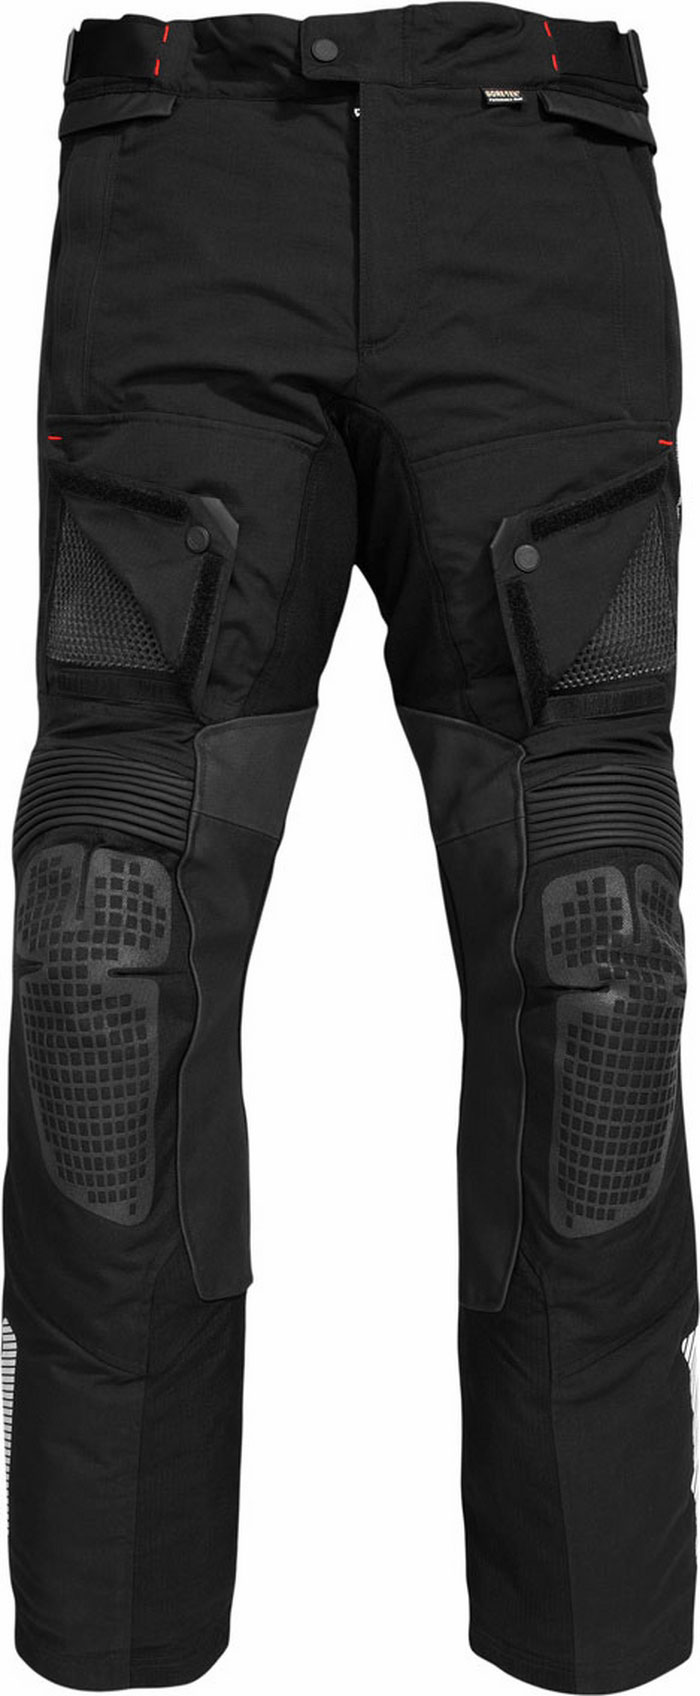 Trousers Rev'it Defender GTX Black - Long